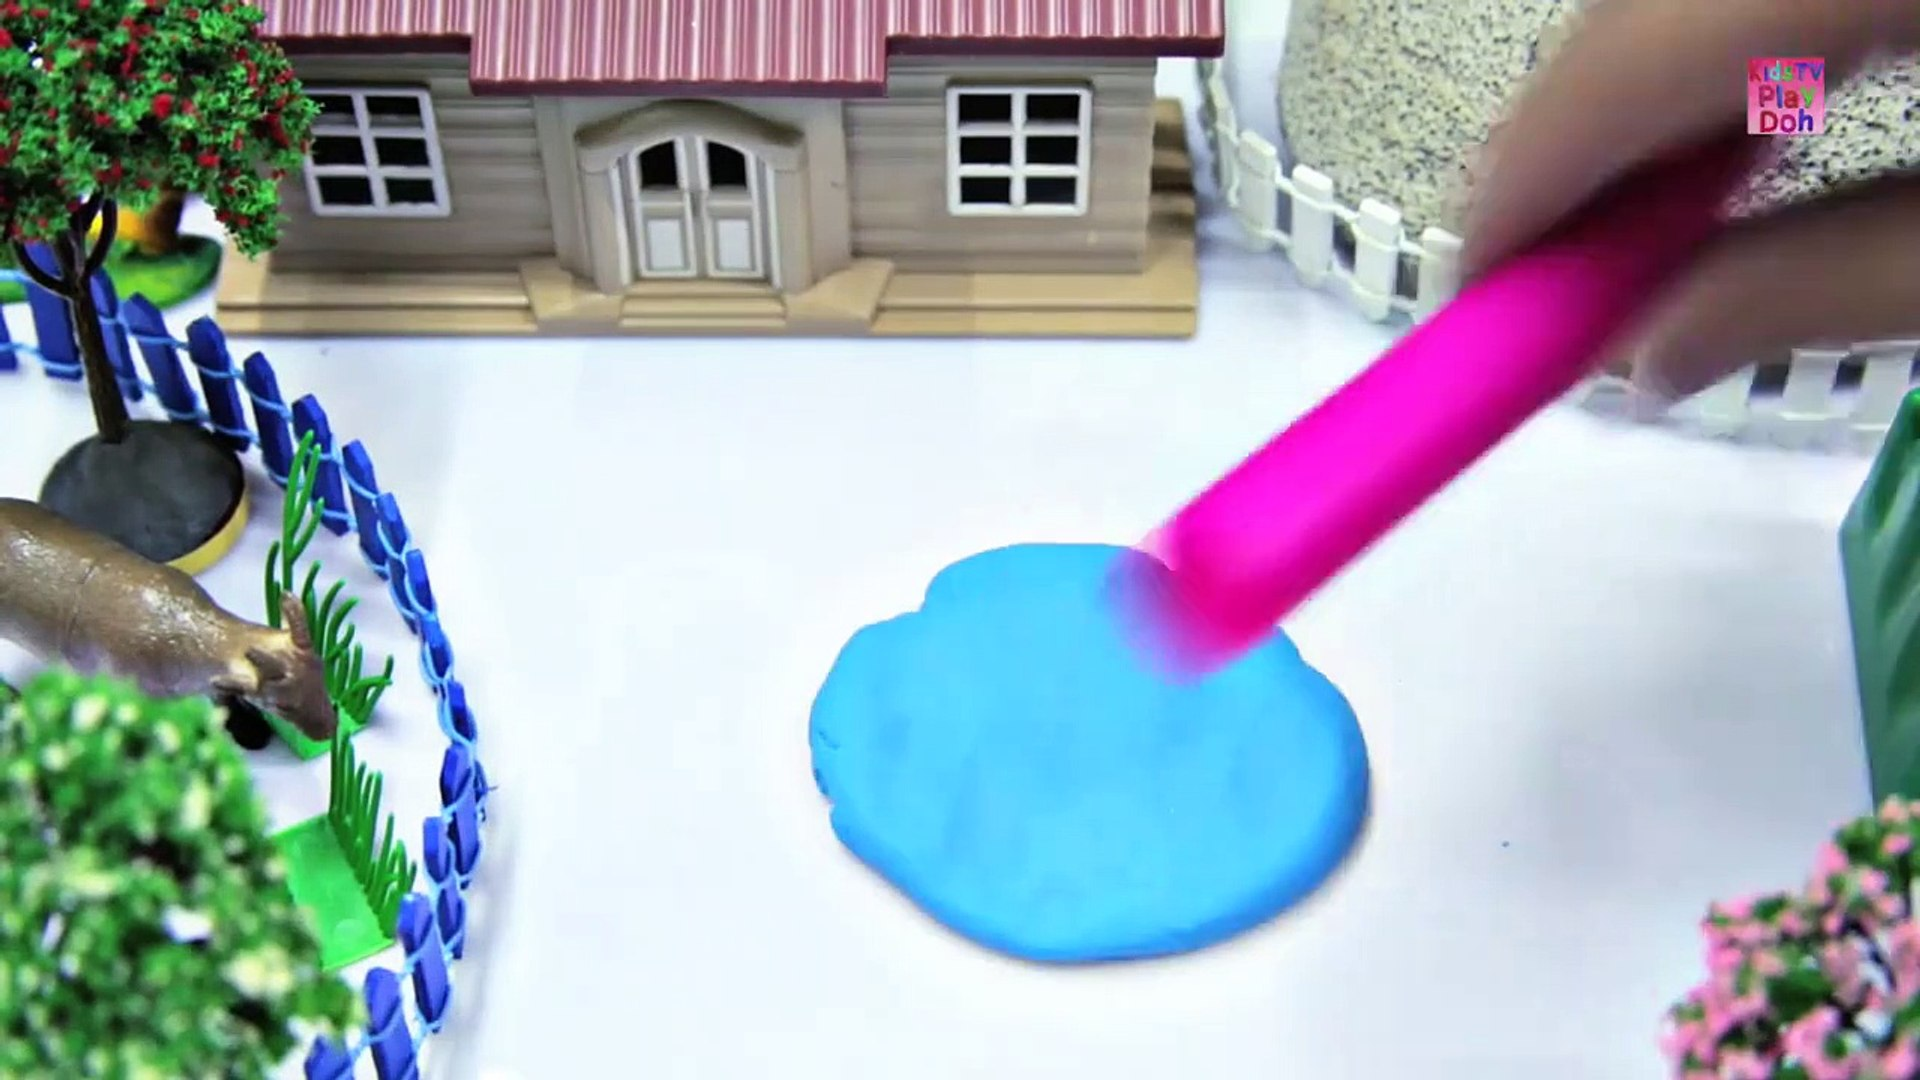 Learn Colors With Play Doh _ Play Dohasd Videos for Kids _ Kids Learning Videos  _ Play Doh Fish